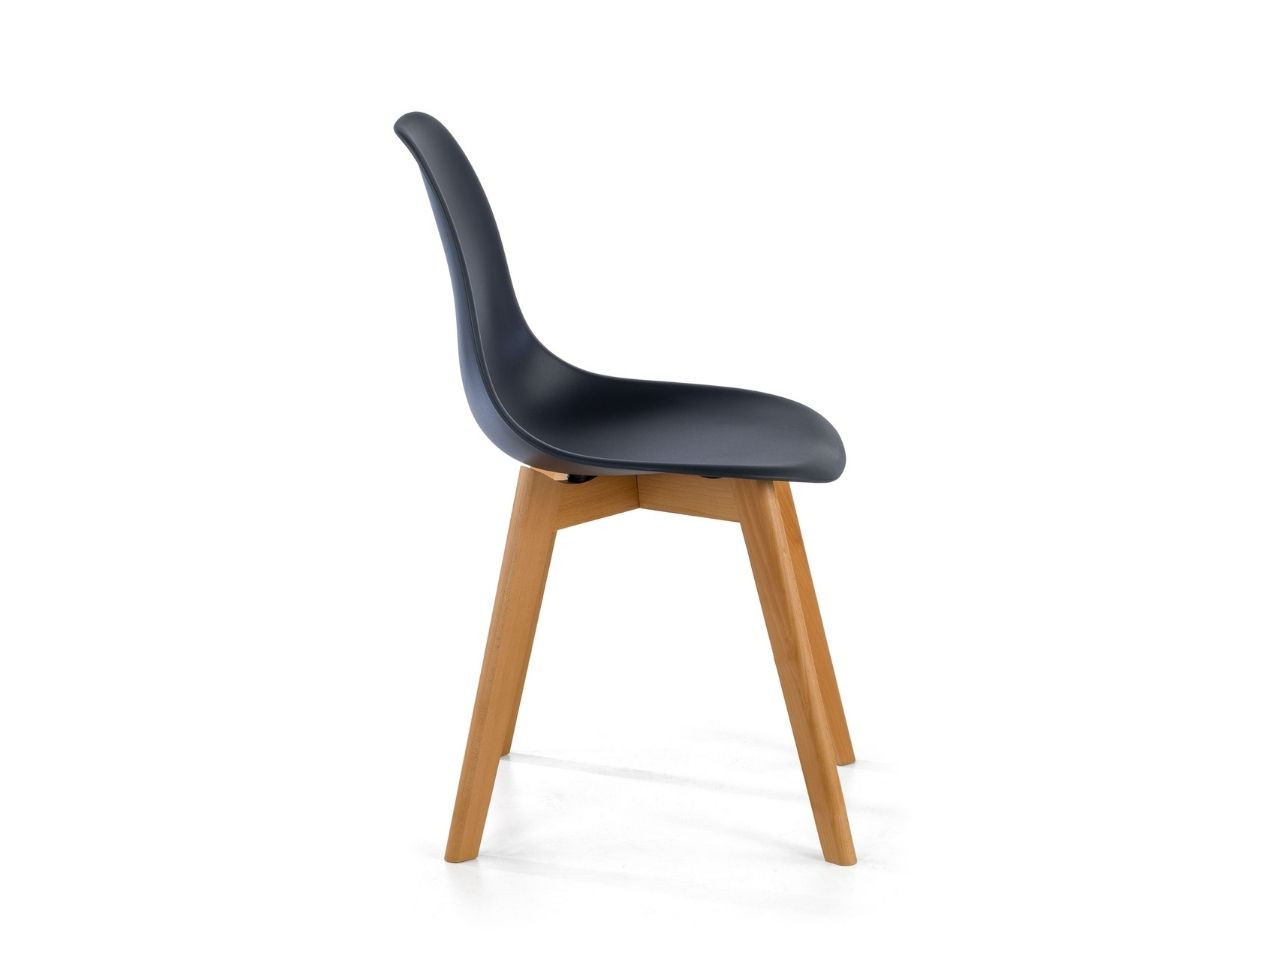 Sofas chaise longue baratos barcelona for Sofas de piel con chaise longue